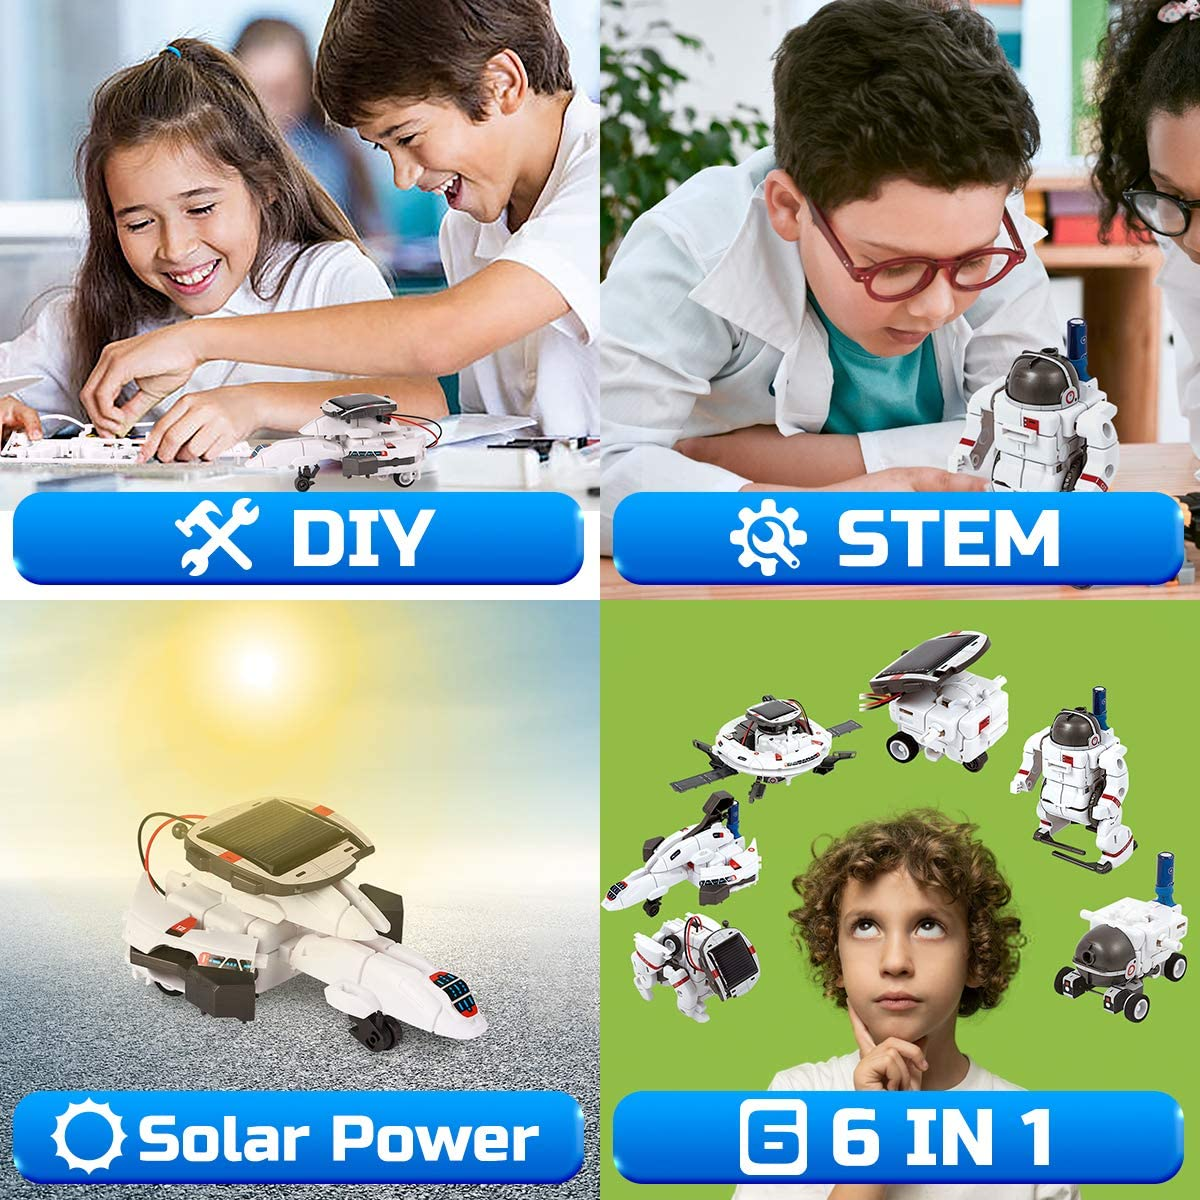 6 in 1 STEM Learning Educational Toys Space Moon Exploration Fleet Building Experiment Toys GILOBABY Solar Robot Kit DIY Science Kit for Boys Girls Age 8+